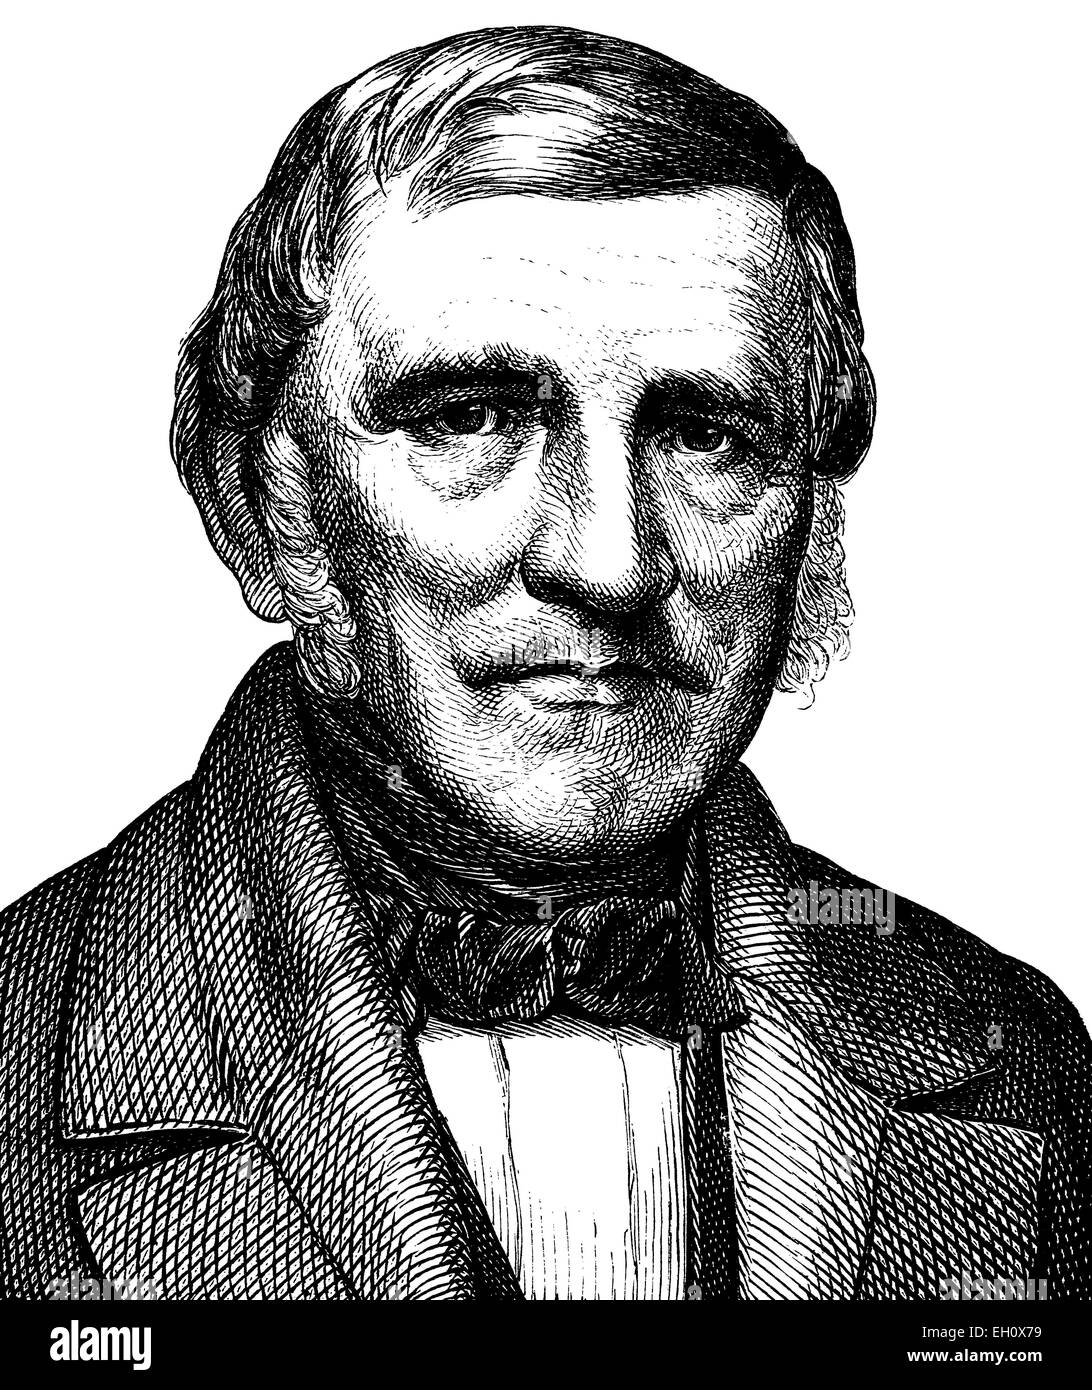 Digital improved image of Johann Franz Encke, 1791 - 1865, astronomer, portrait, historical illustration, 1880 - Stock Image